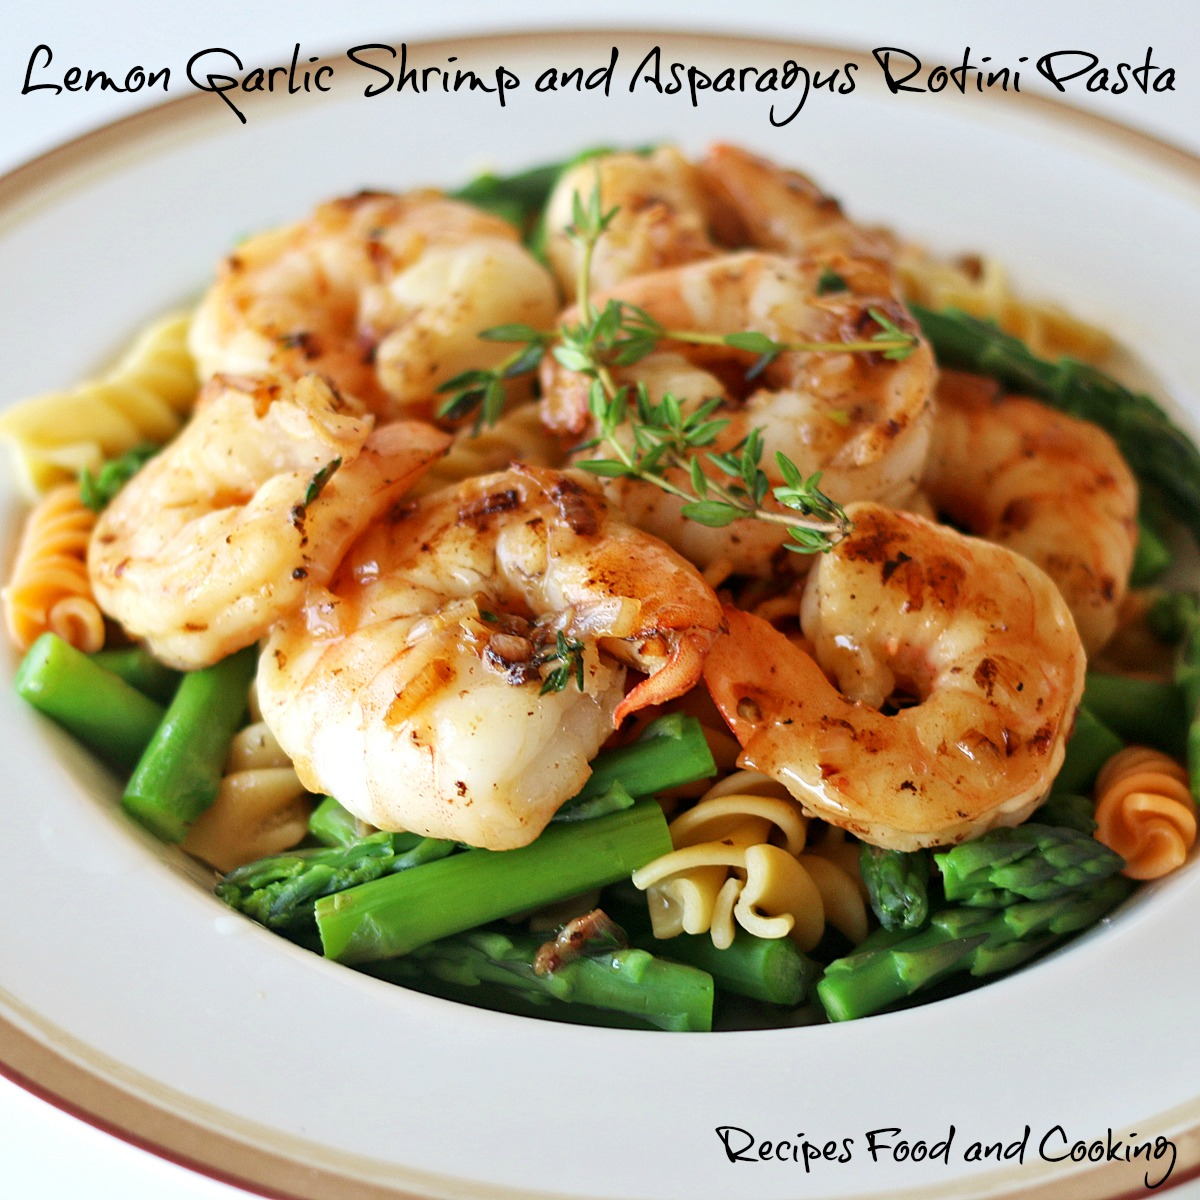 Lemon Garlic Shrimp and Asparagus Rotini Pasta